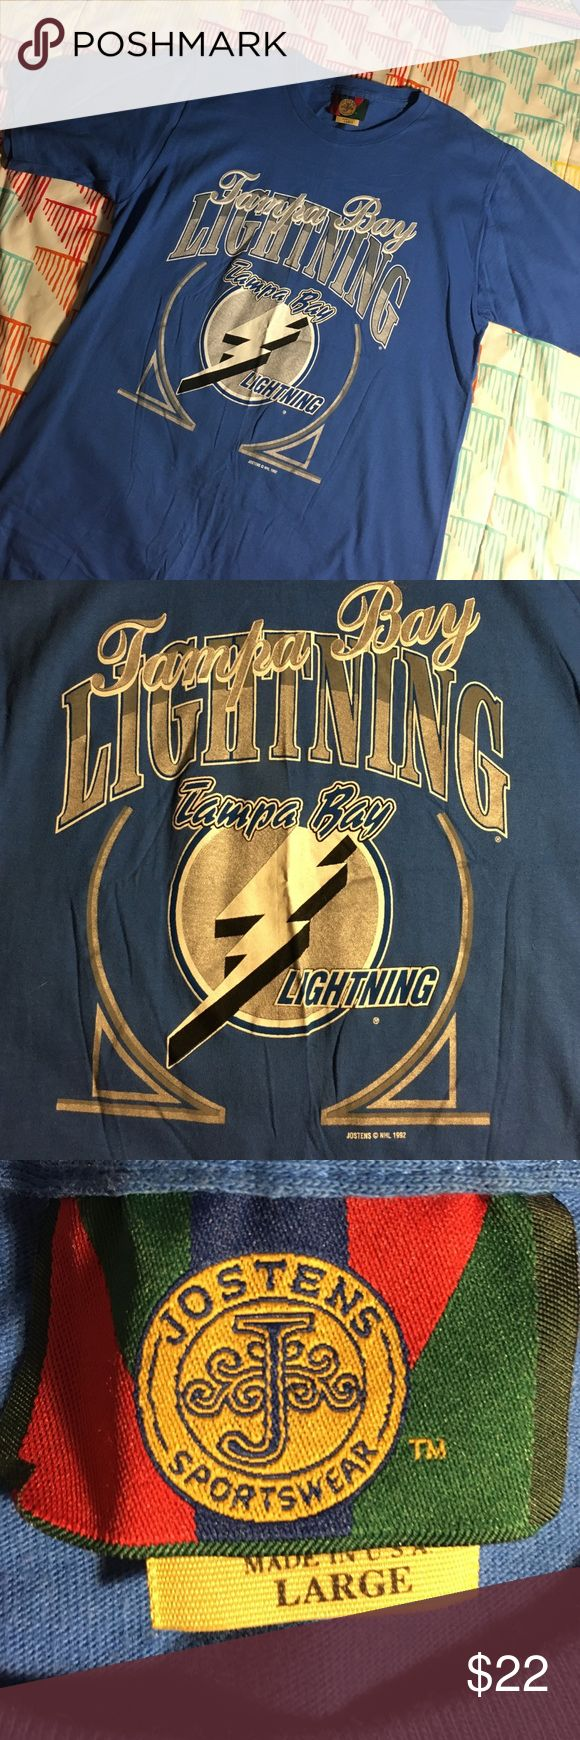 Vintage Tampa Bay Lighting 1992 Hockey Shirt Men's Large - Excellent condition jostens  Shirts Tees - Short Sleeve